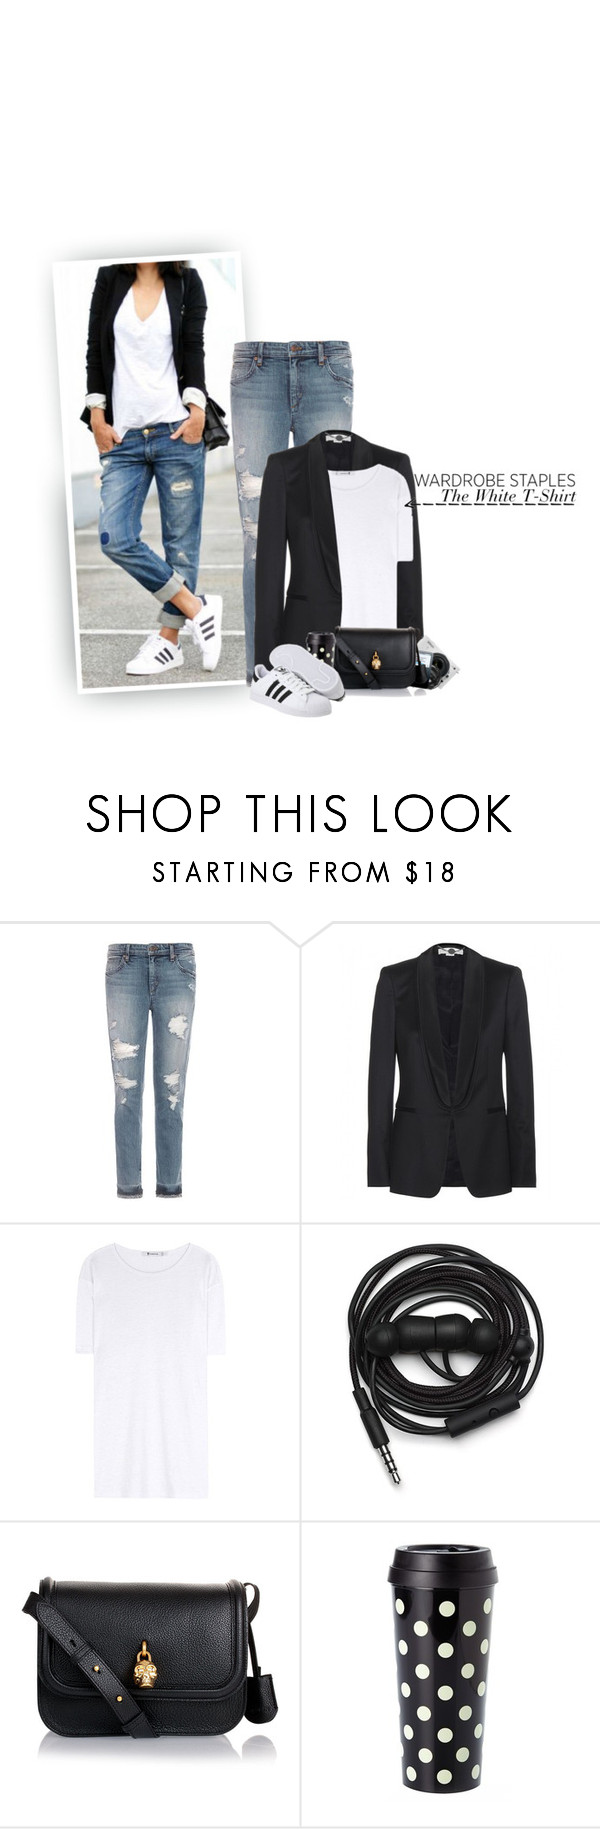 """Wardrobe Staples: The White T-Shirt #2"" by hollowpoint-smile ❤ liked on Polyvore featuring Joe's Jeans, STELLA McCARTNEY, T By Alexander Wang, Nikon, Urbanears, Alexander McQueen, Kate Spade and adidas Originals"